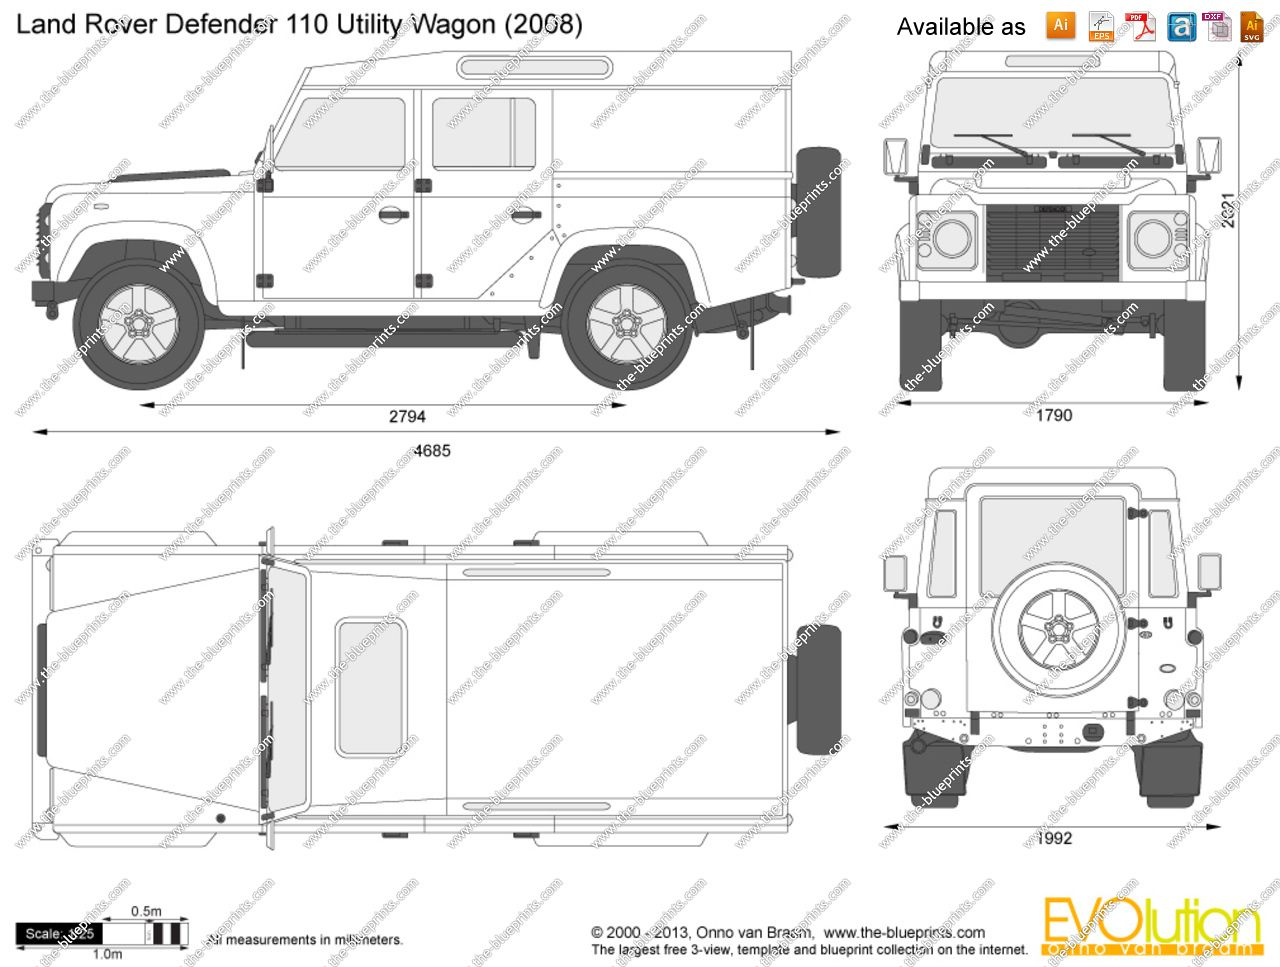 Car interior measurements